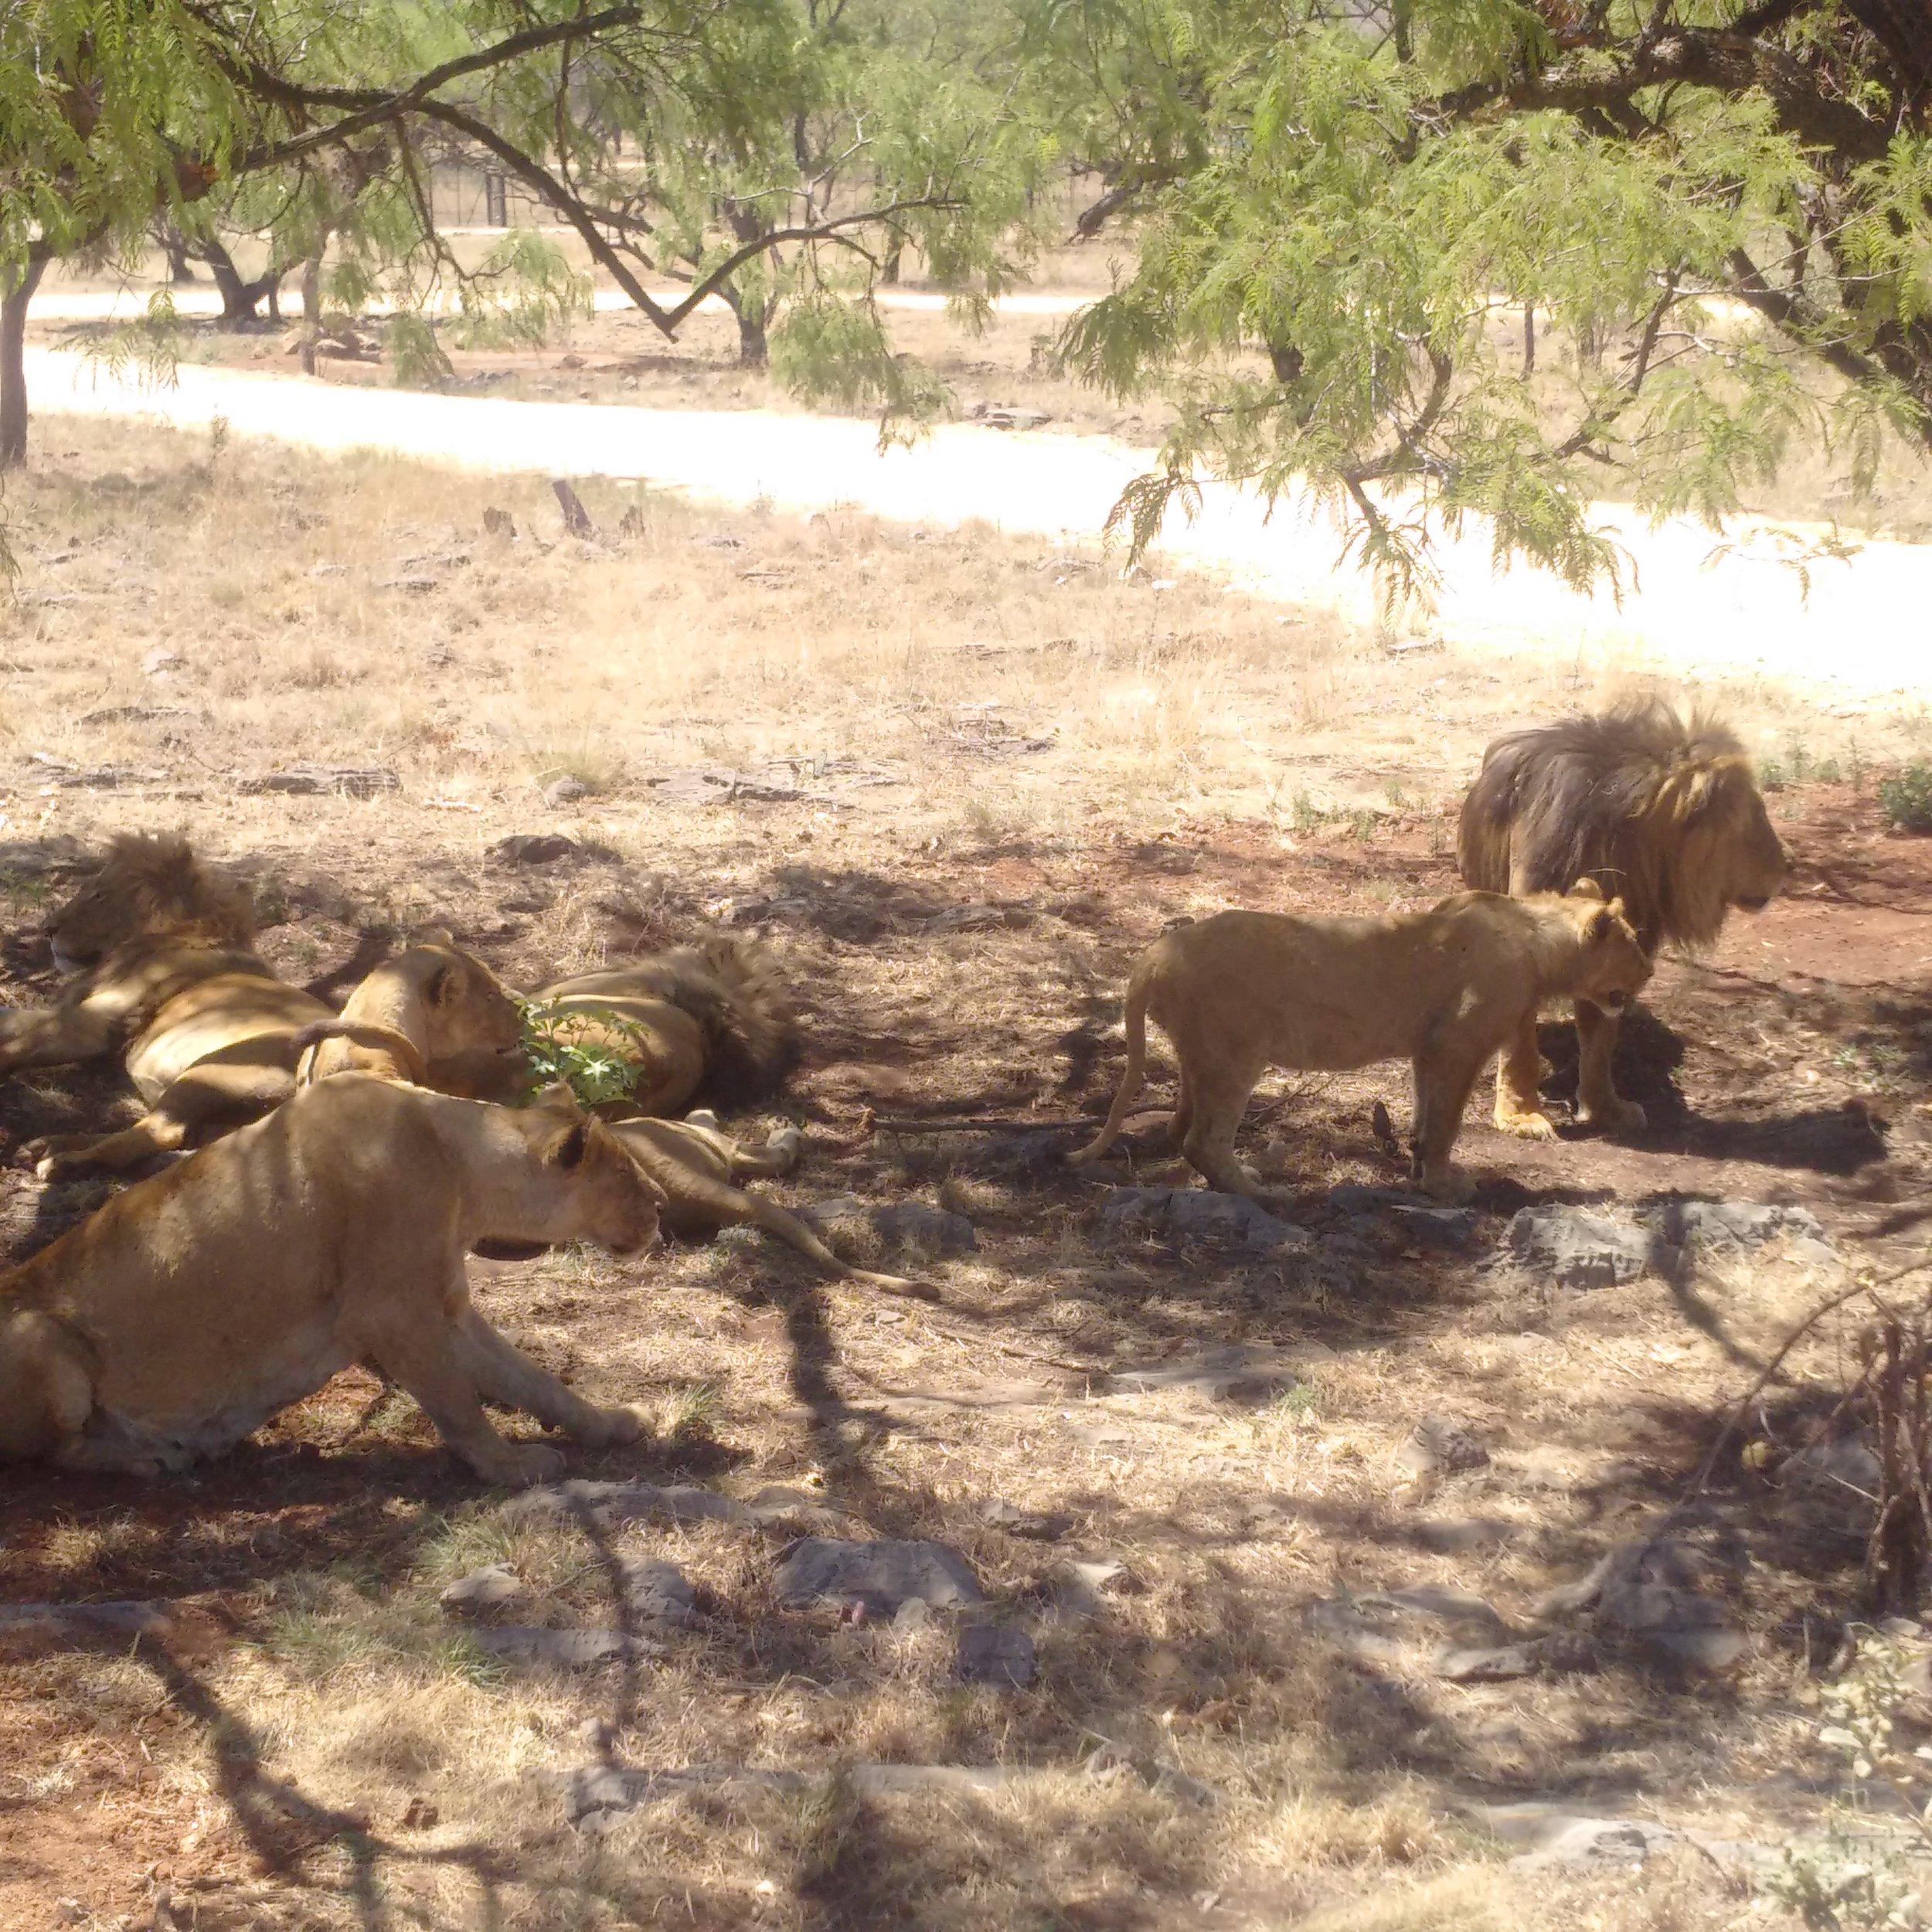 My first time seeing lions this close